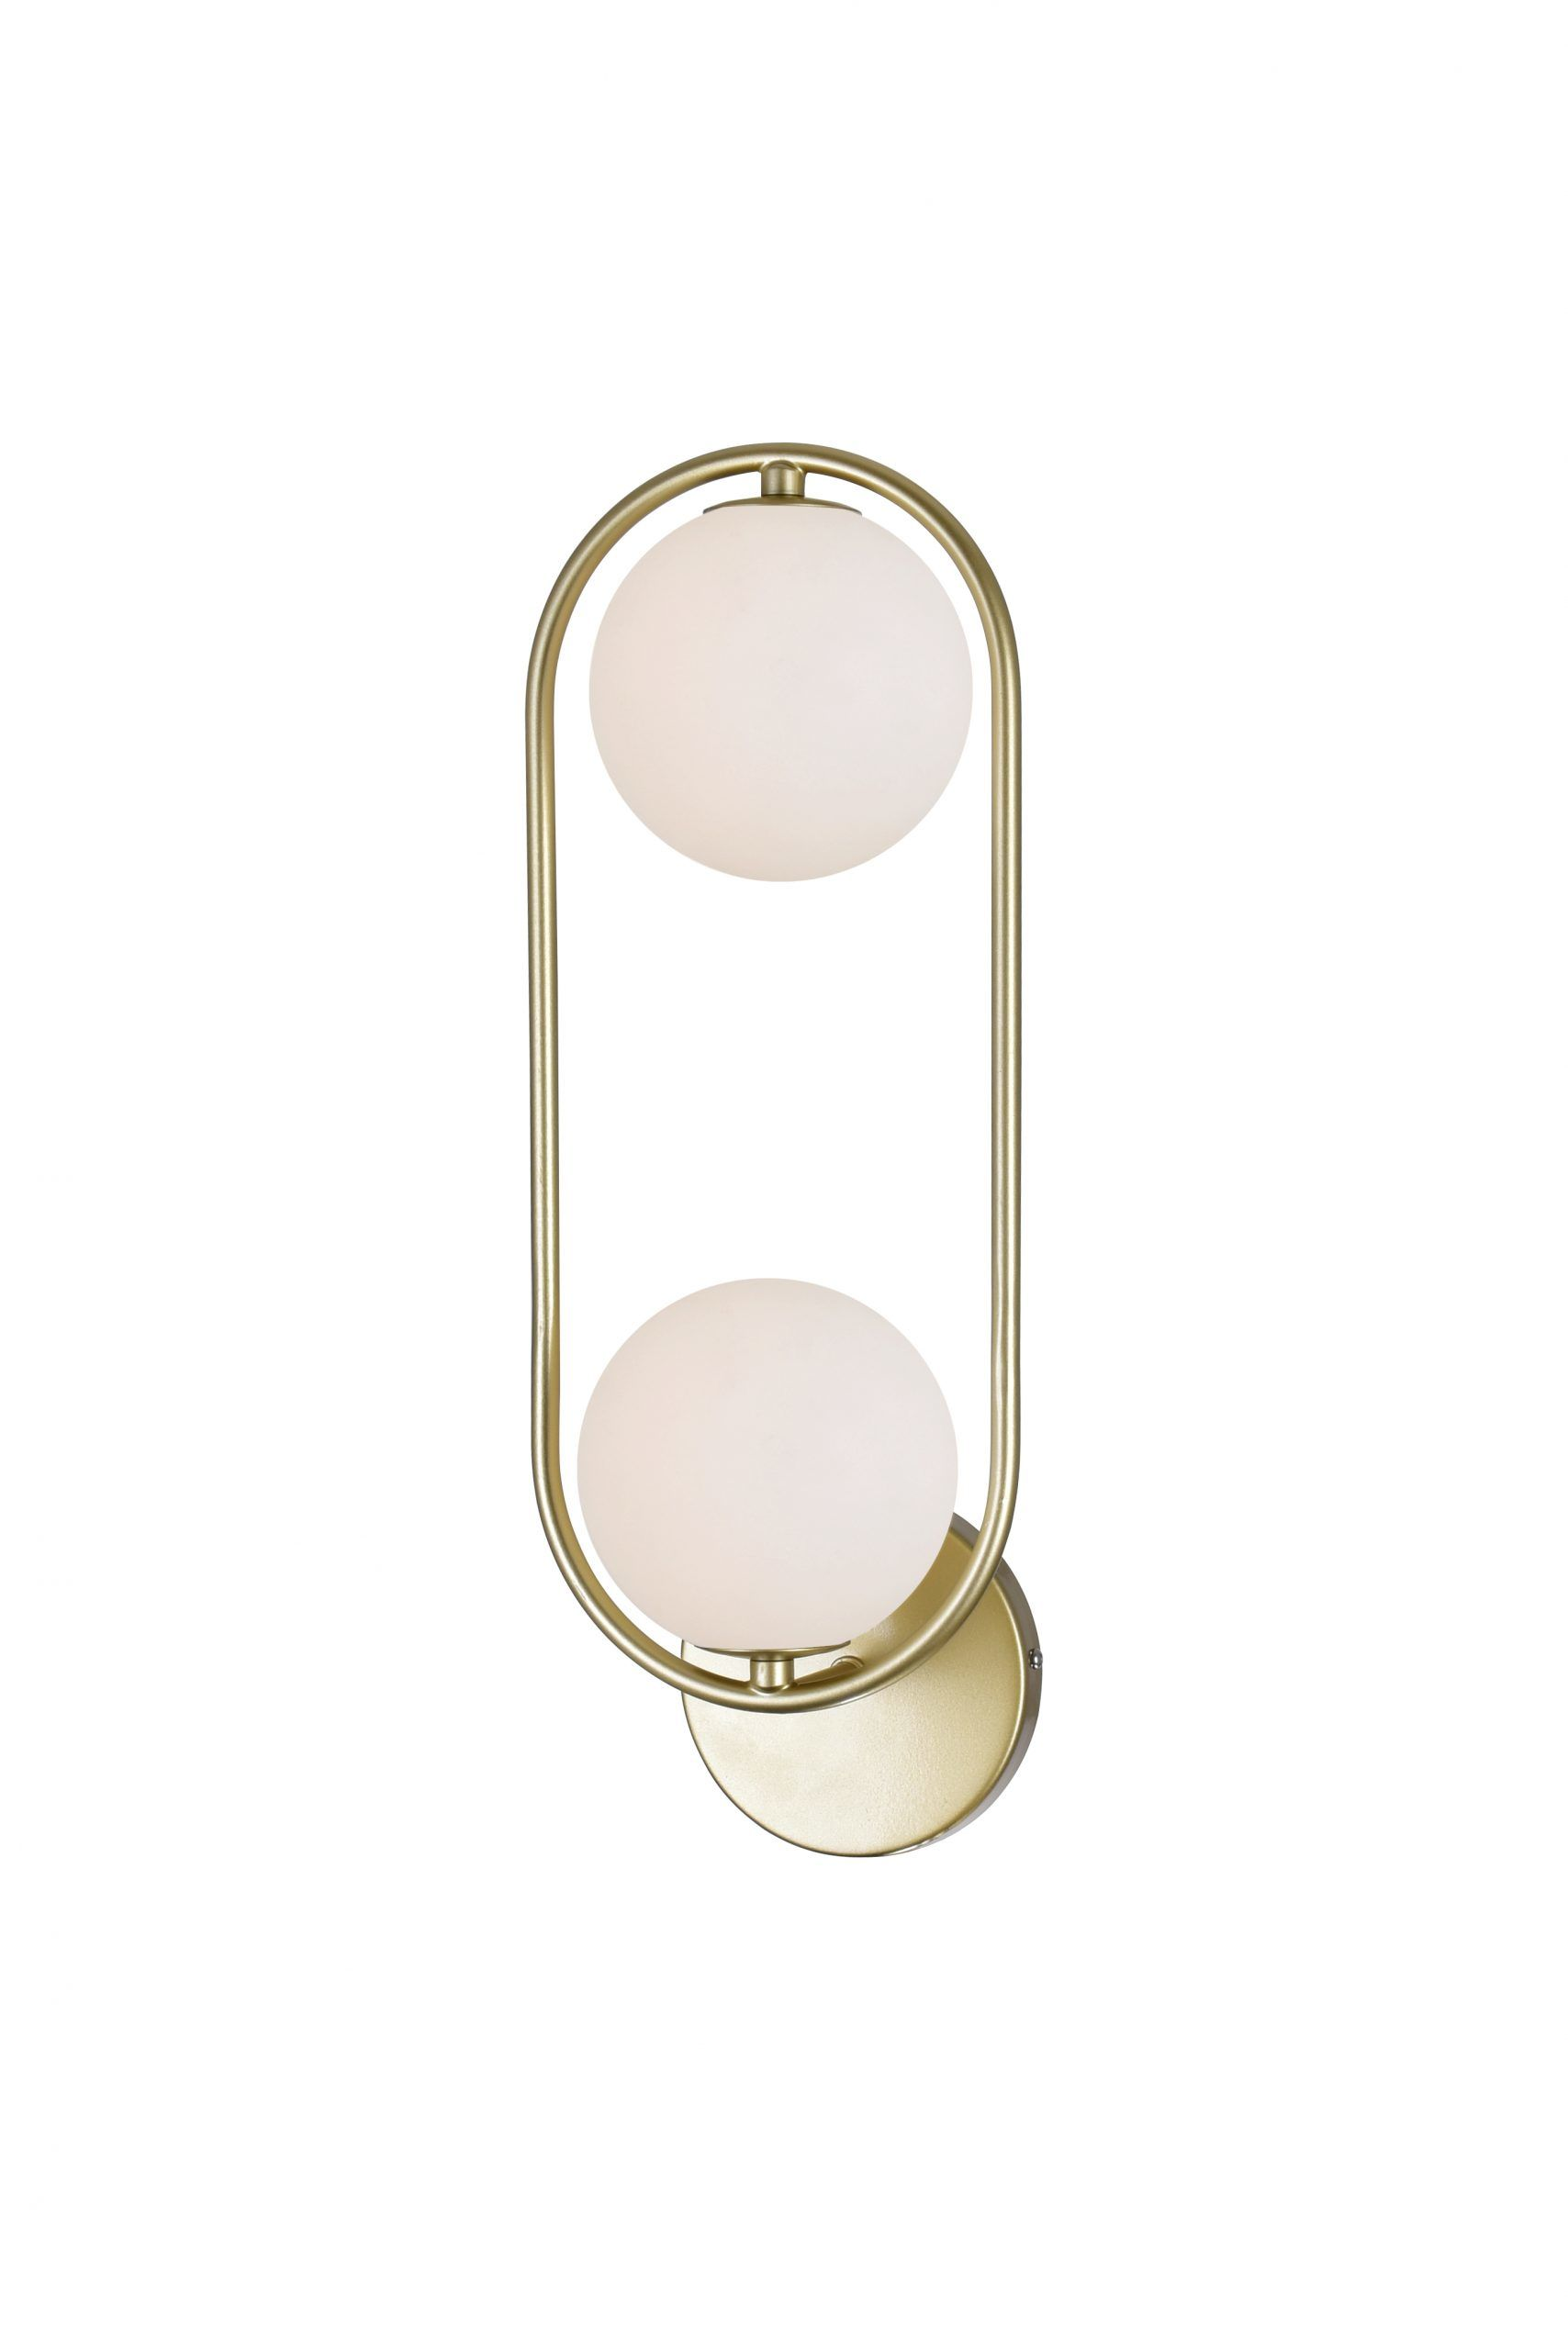 2 Light Sconce with Medallion Gold Finish